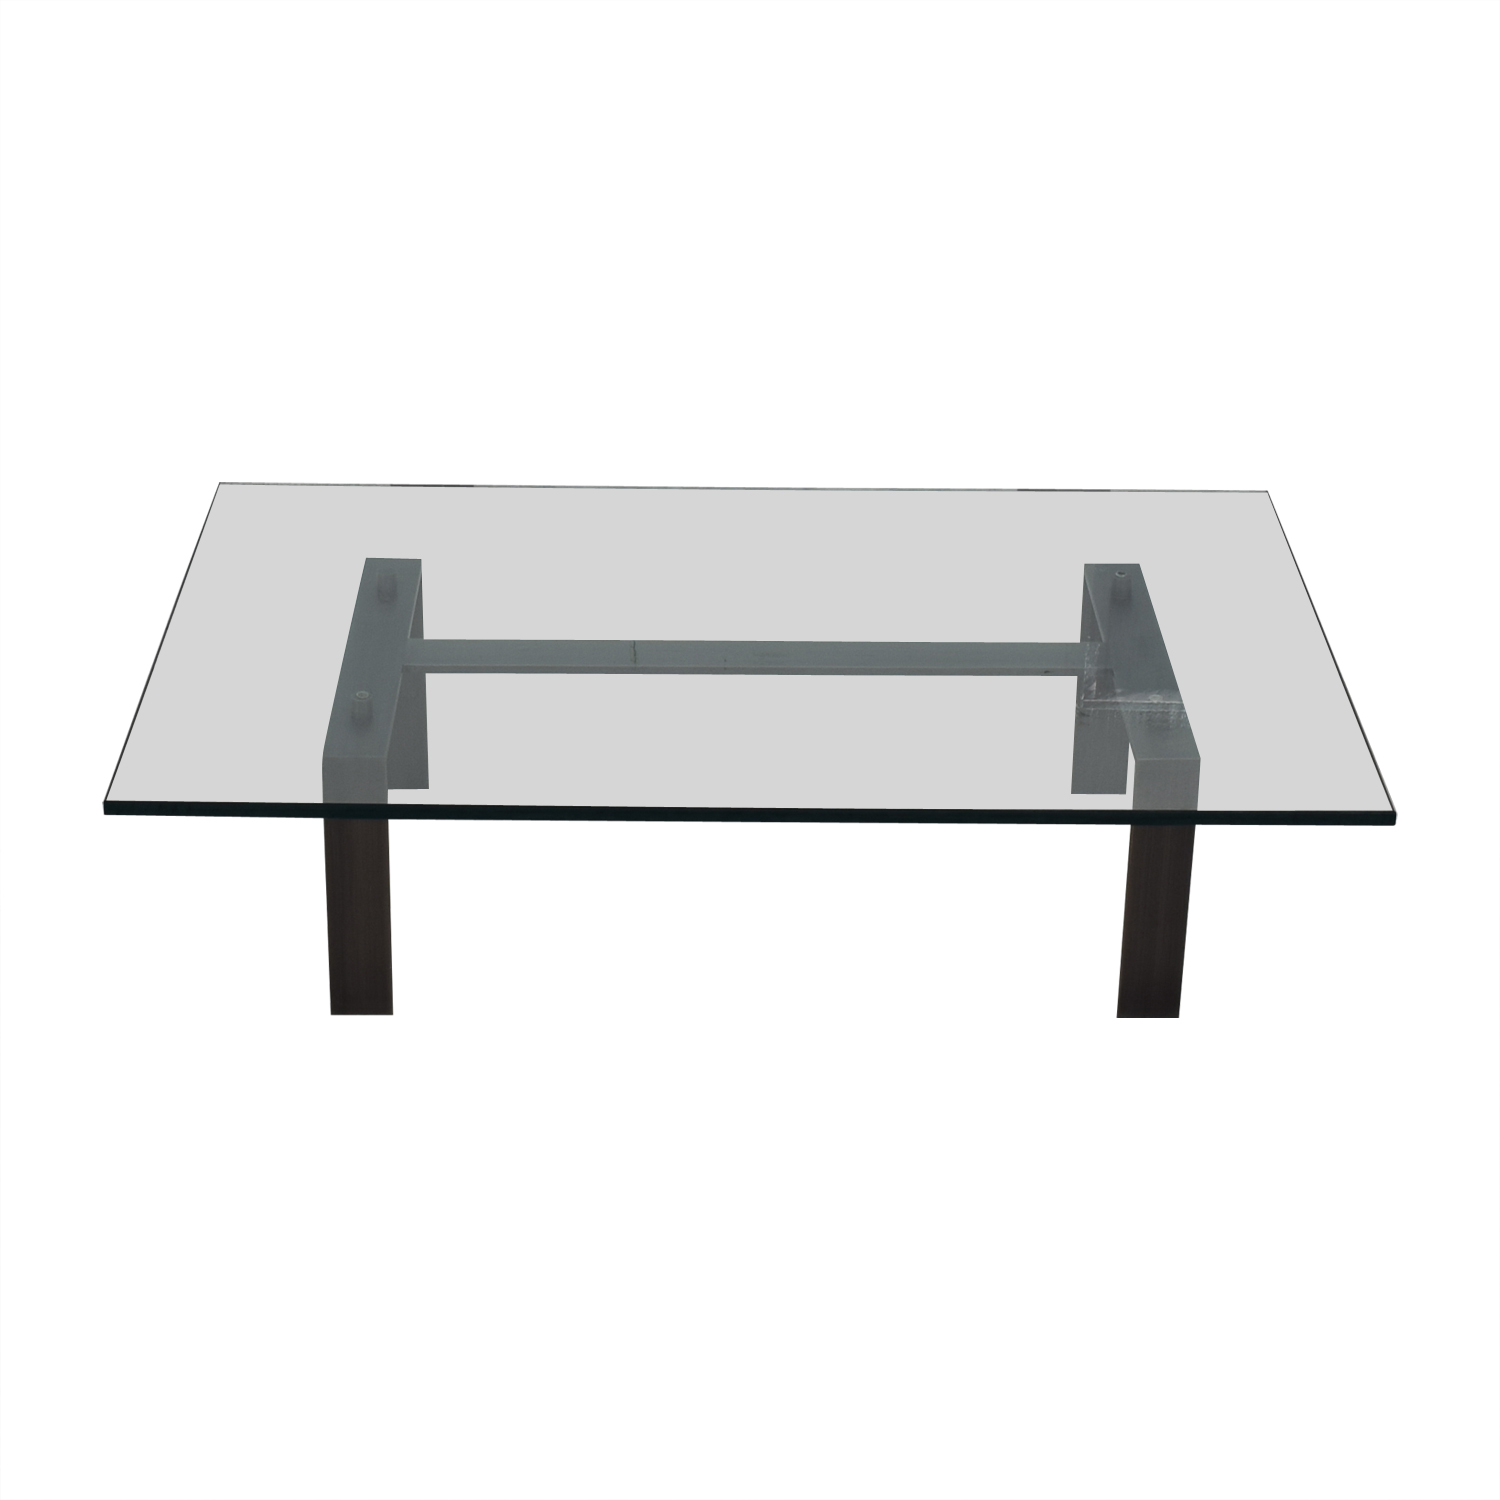 Desiron Desiron Empire Glass Top with Satin Steel Coffee Table nyc